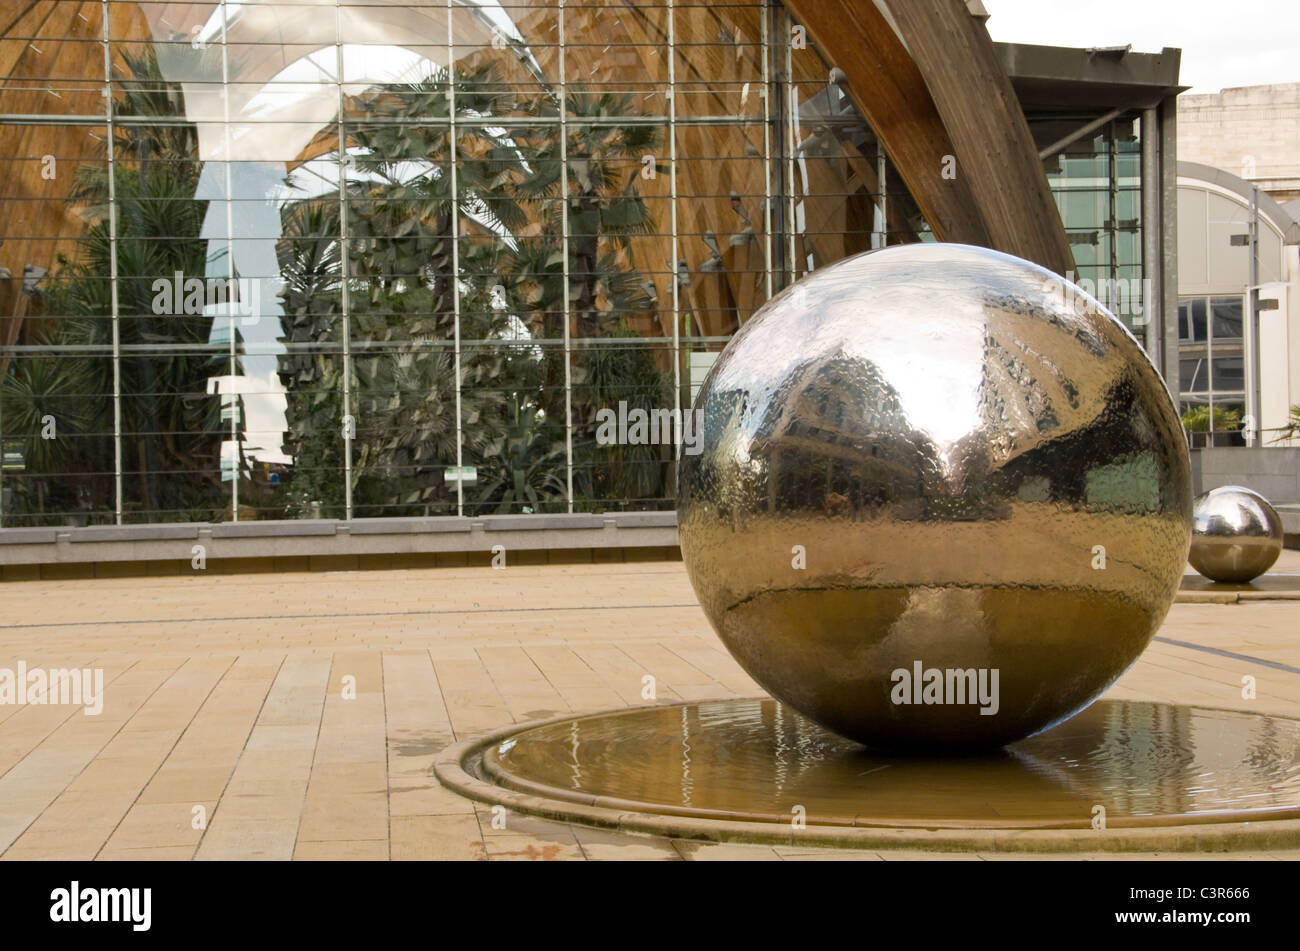 Steel Ball Reflections Stock Photos & Steel Ball Reflections Stock ...